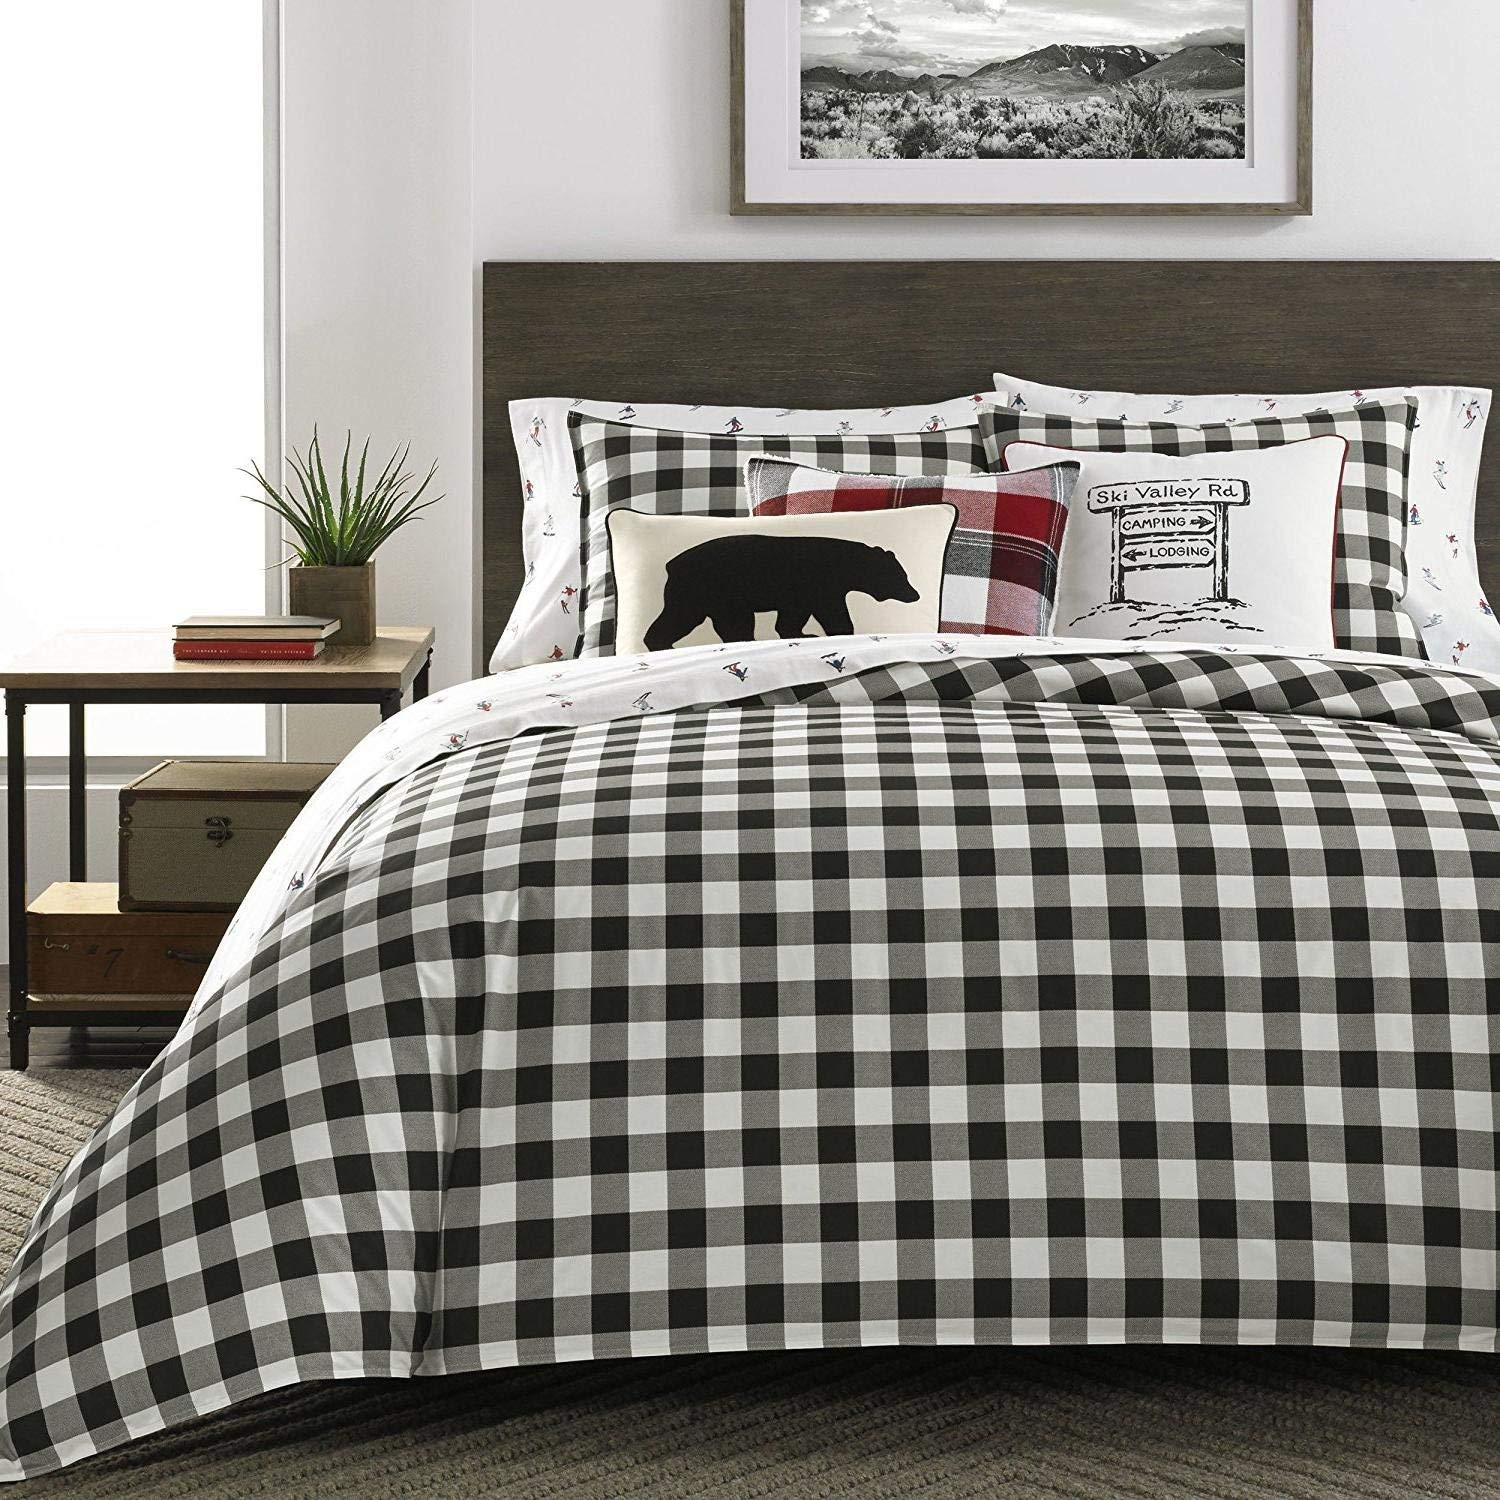 Get Quotations Ms 3pc Black White Grey Gingham Plaid Themed Comforter King Set Lodge Cabin Shepherds Check